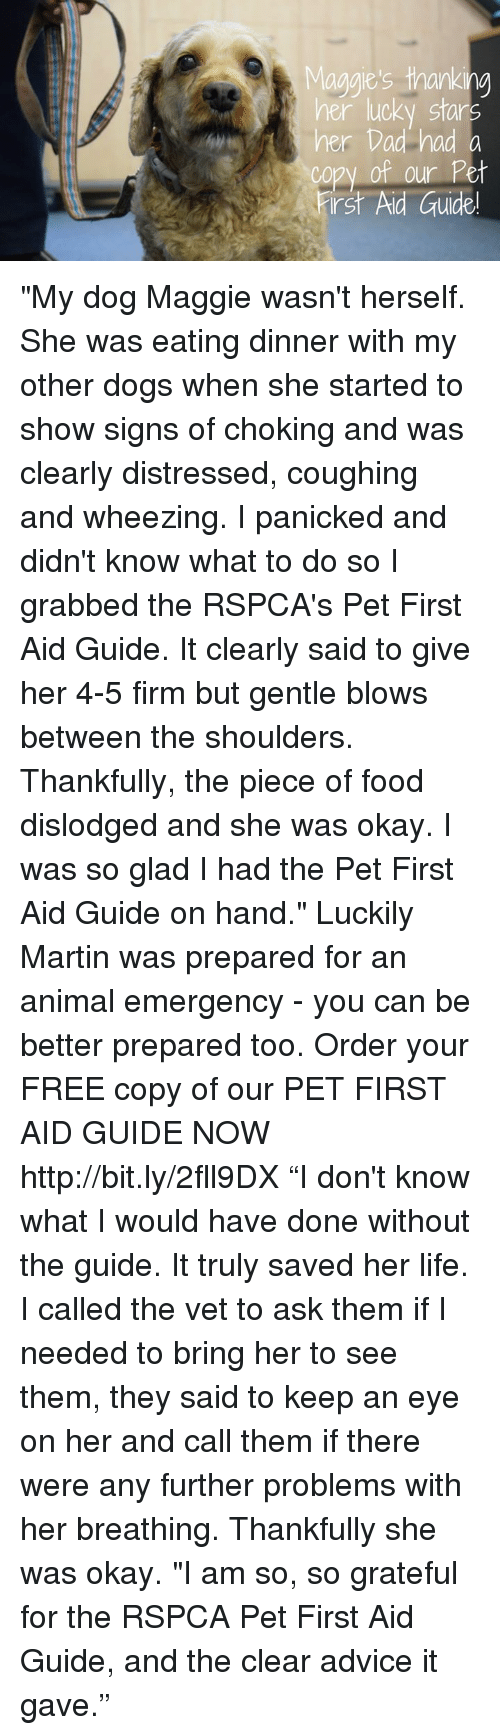 "Rspca: aggie's thanking  er luck Star  her Dad had a  copy of our Pet  irst Aid Guide  0 ""My dog Maggie wasn't herself. She was eating dinner with my other dogs when she started to show signs of choking and was clearly distressed, coughing and wheezing. I panicked and didn't know what to do so I grabbed the RSPCA's Pet First Aid Guide. It clearly said to give her 4-5 firm but gentle blows between the shoulders. Thankfully, the piece of food dislodged and she was okay. I was so glad I had the Pet First Aid Guide on hand.""  Luckily Martin was prepared for an animal emergency - you can be better prepared too. Order your FREE copy of our PET FIRST AID GUIDE NOW http://bit.ly/2fll9DX   ""I don't know what I would have done without the guide. It truly saved her life. I called the vet to ask them if I needed to bring her to see them, they said to keep an eye on her and call them if there were any further problems with her breathing. Thankfully she was okay.  ""I am so, so grateful for the RSPCA Pet First Aid Guide, and the clear advice it gave."""